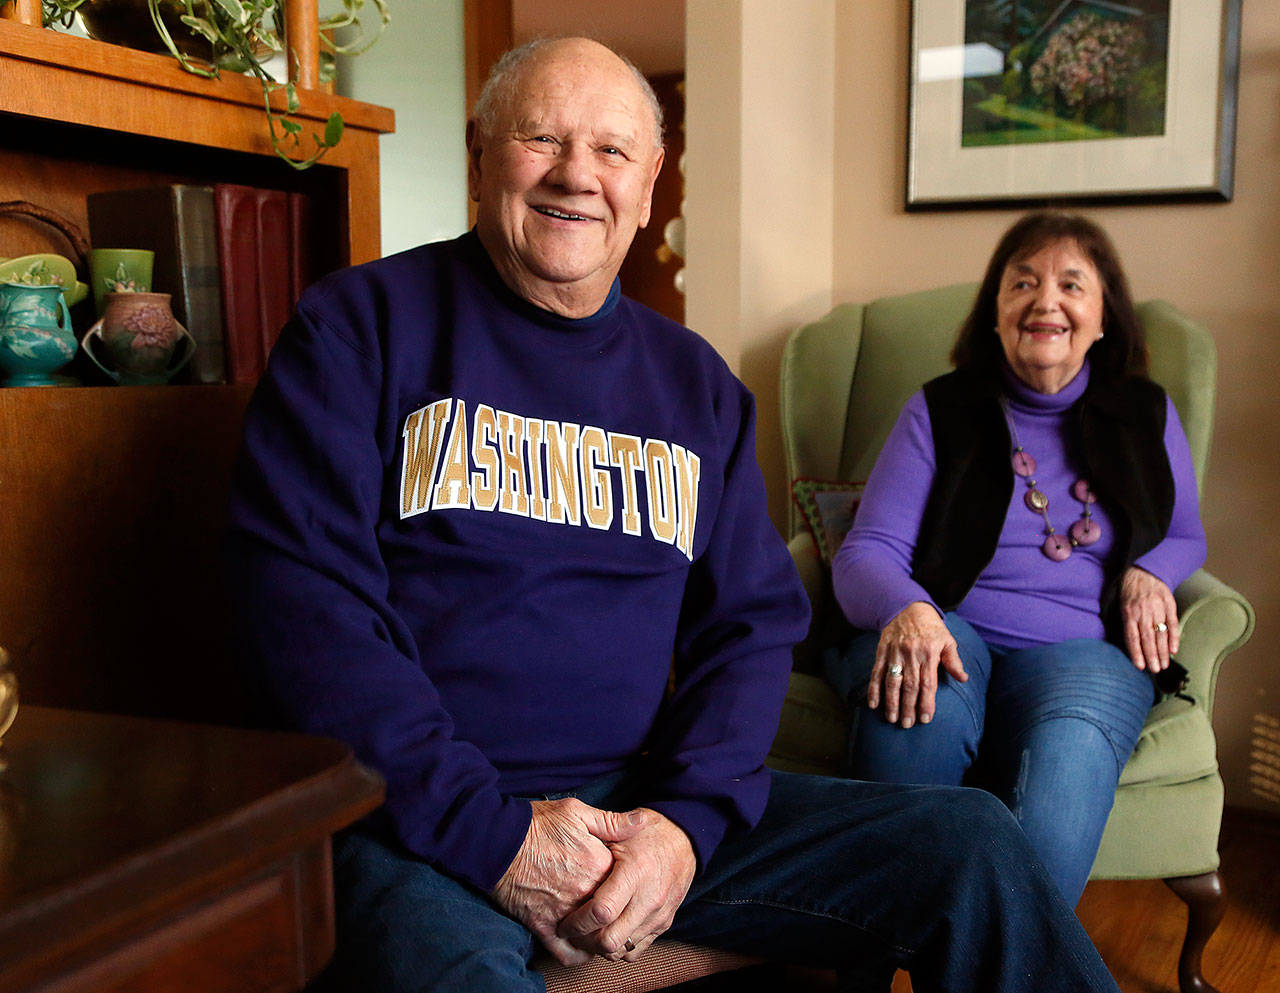 A 1956 University of Washington graduate, Thor Donald Linde and his wife, Pat, have been Husky season ticket holders since 1964, attending 15 bowl games, including seven Rose Bowls. In all the regular Husky football games during that span, they have only missed a half-dozen or so. (Dan Bates / The Herald)